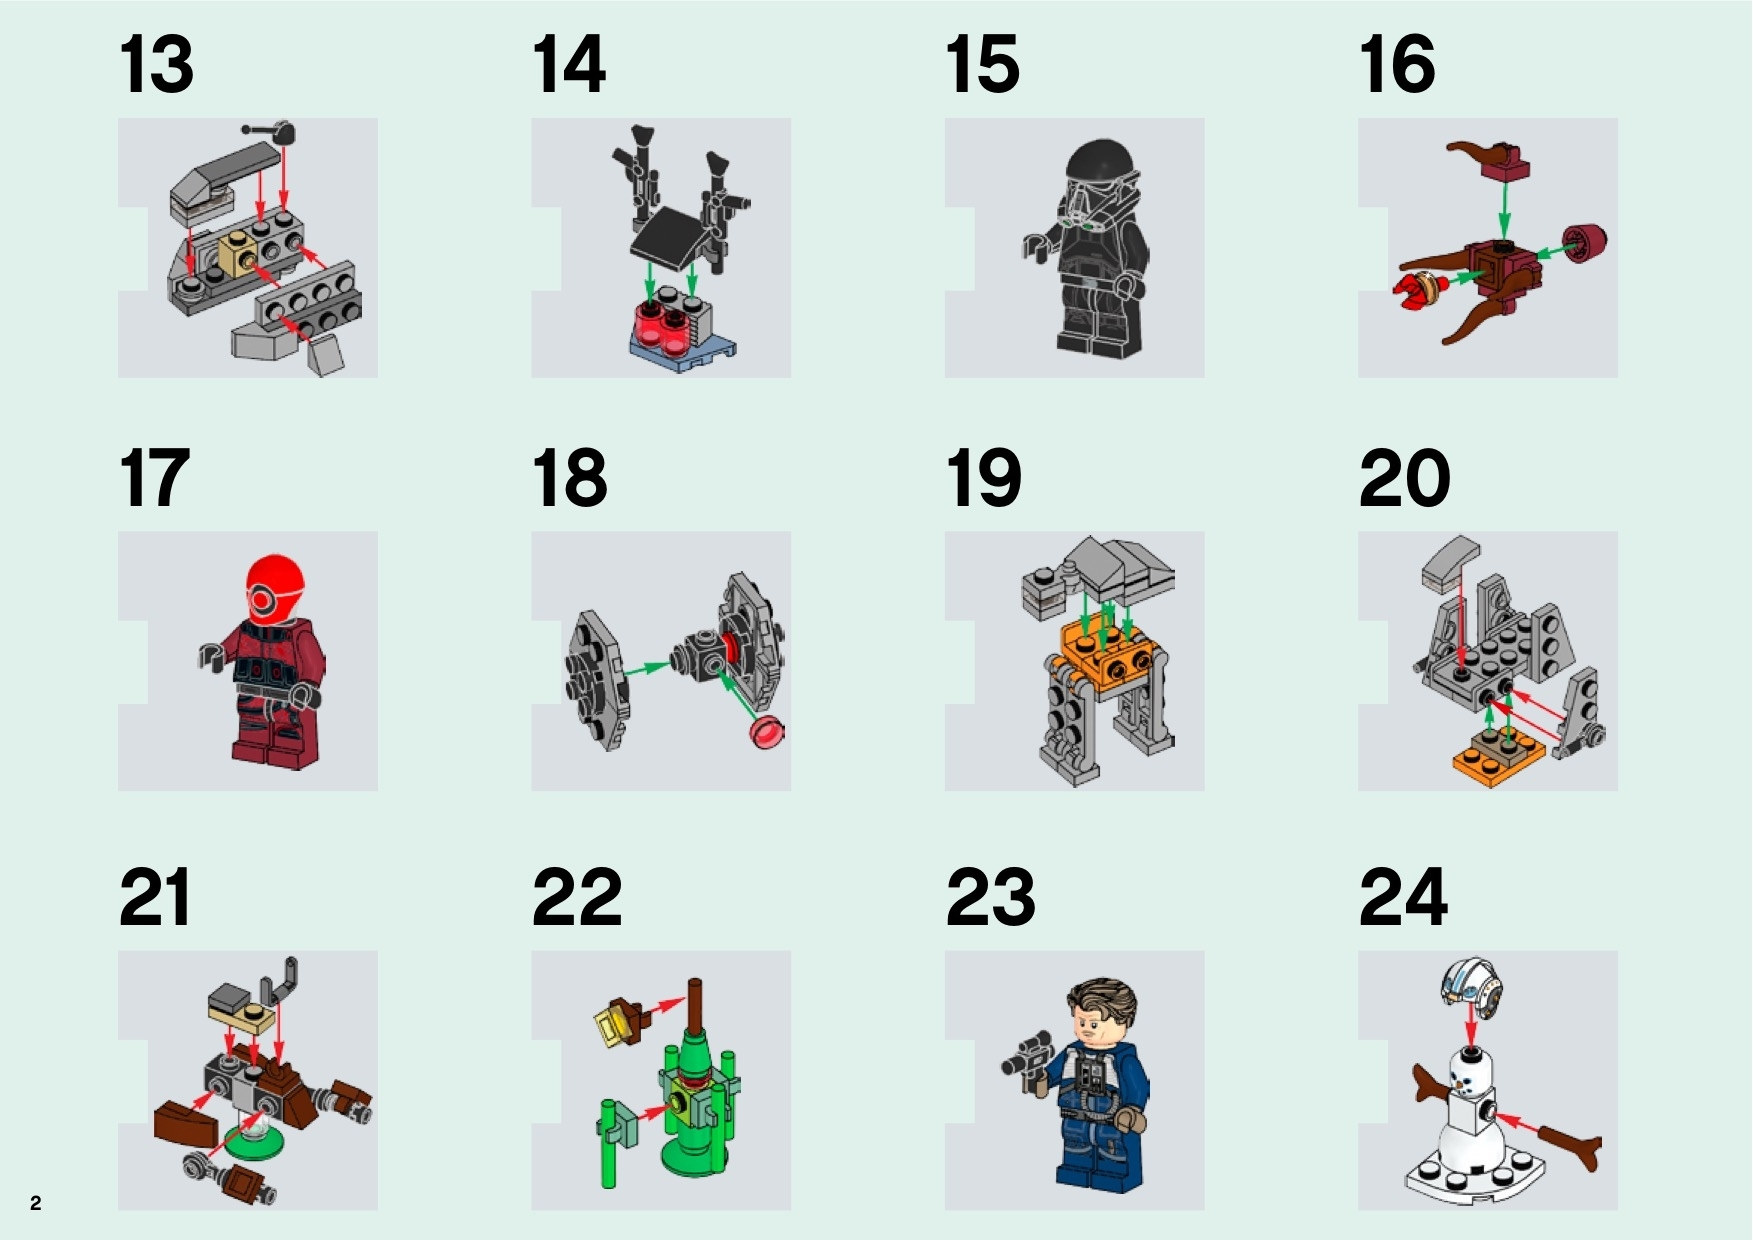 Lego 75213 Star Wars Advent Calendar Instructions, Star Wars inside Lego Star Wars 2018 Advent Calendar Instructions